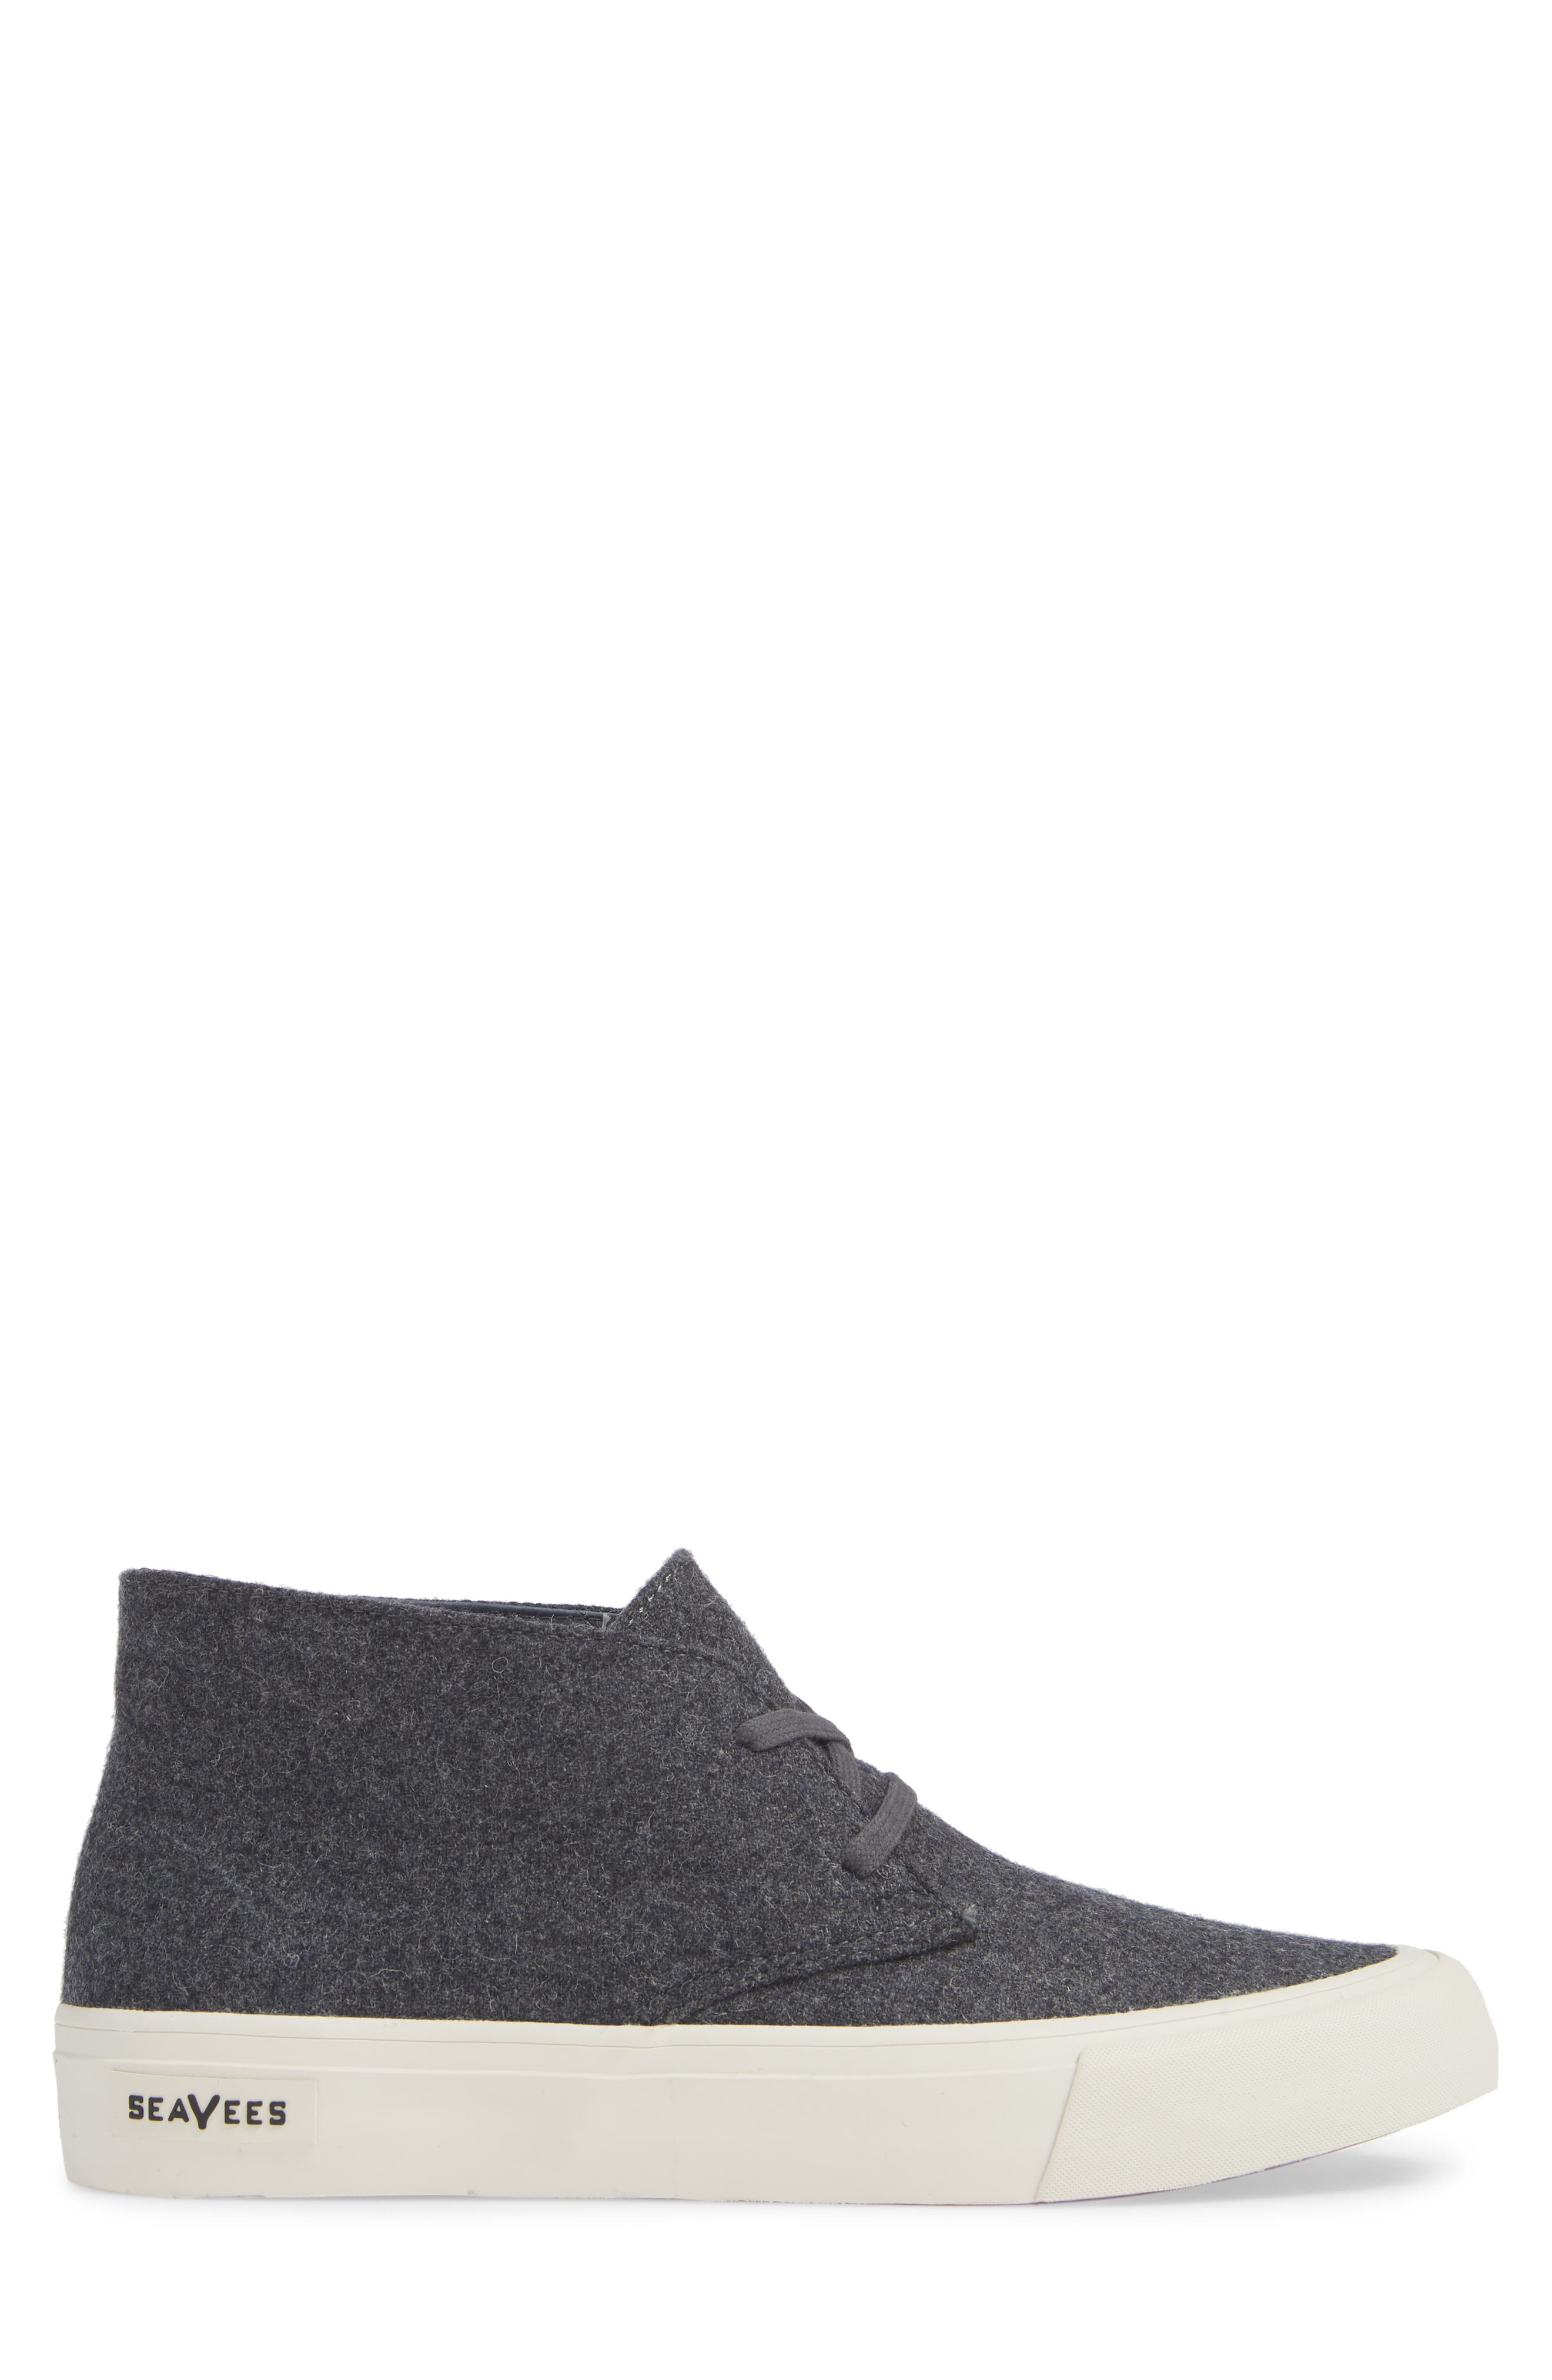 Maslon Chukka Sneaker,                             Alternate thumbnail 3, color,                             CHARCOAL WOOL FLANNEL